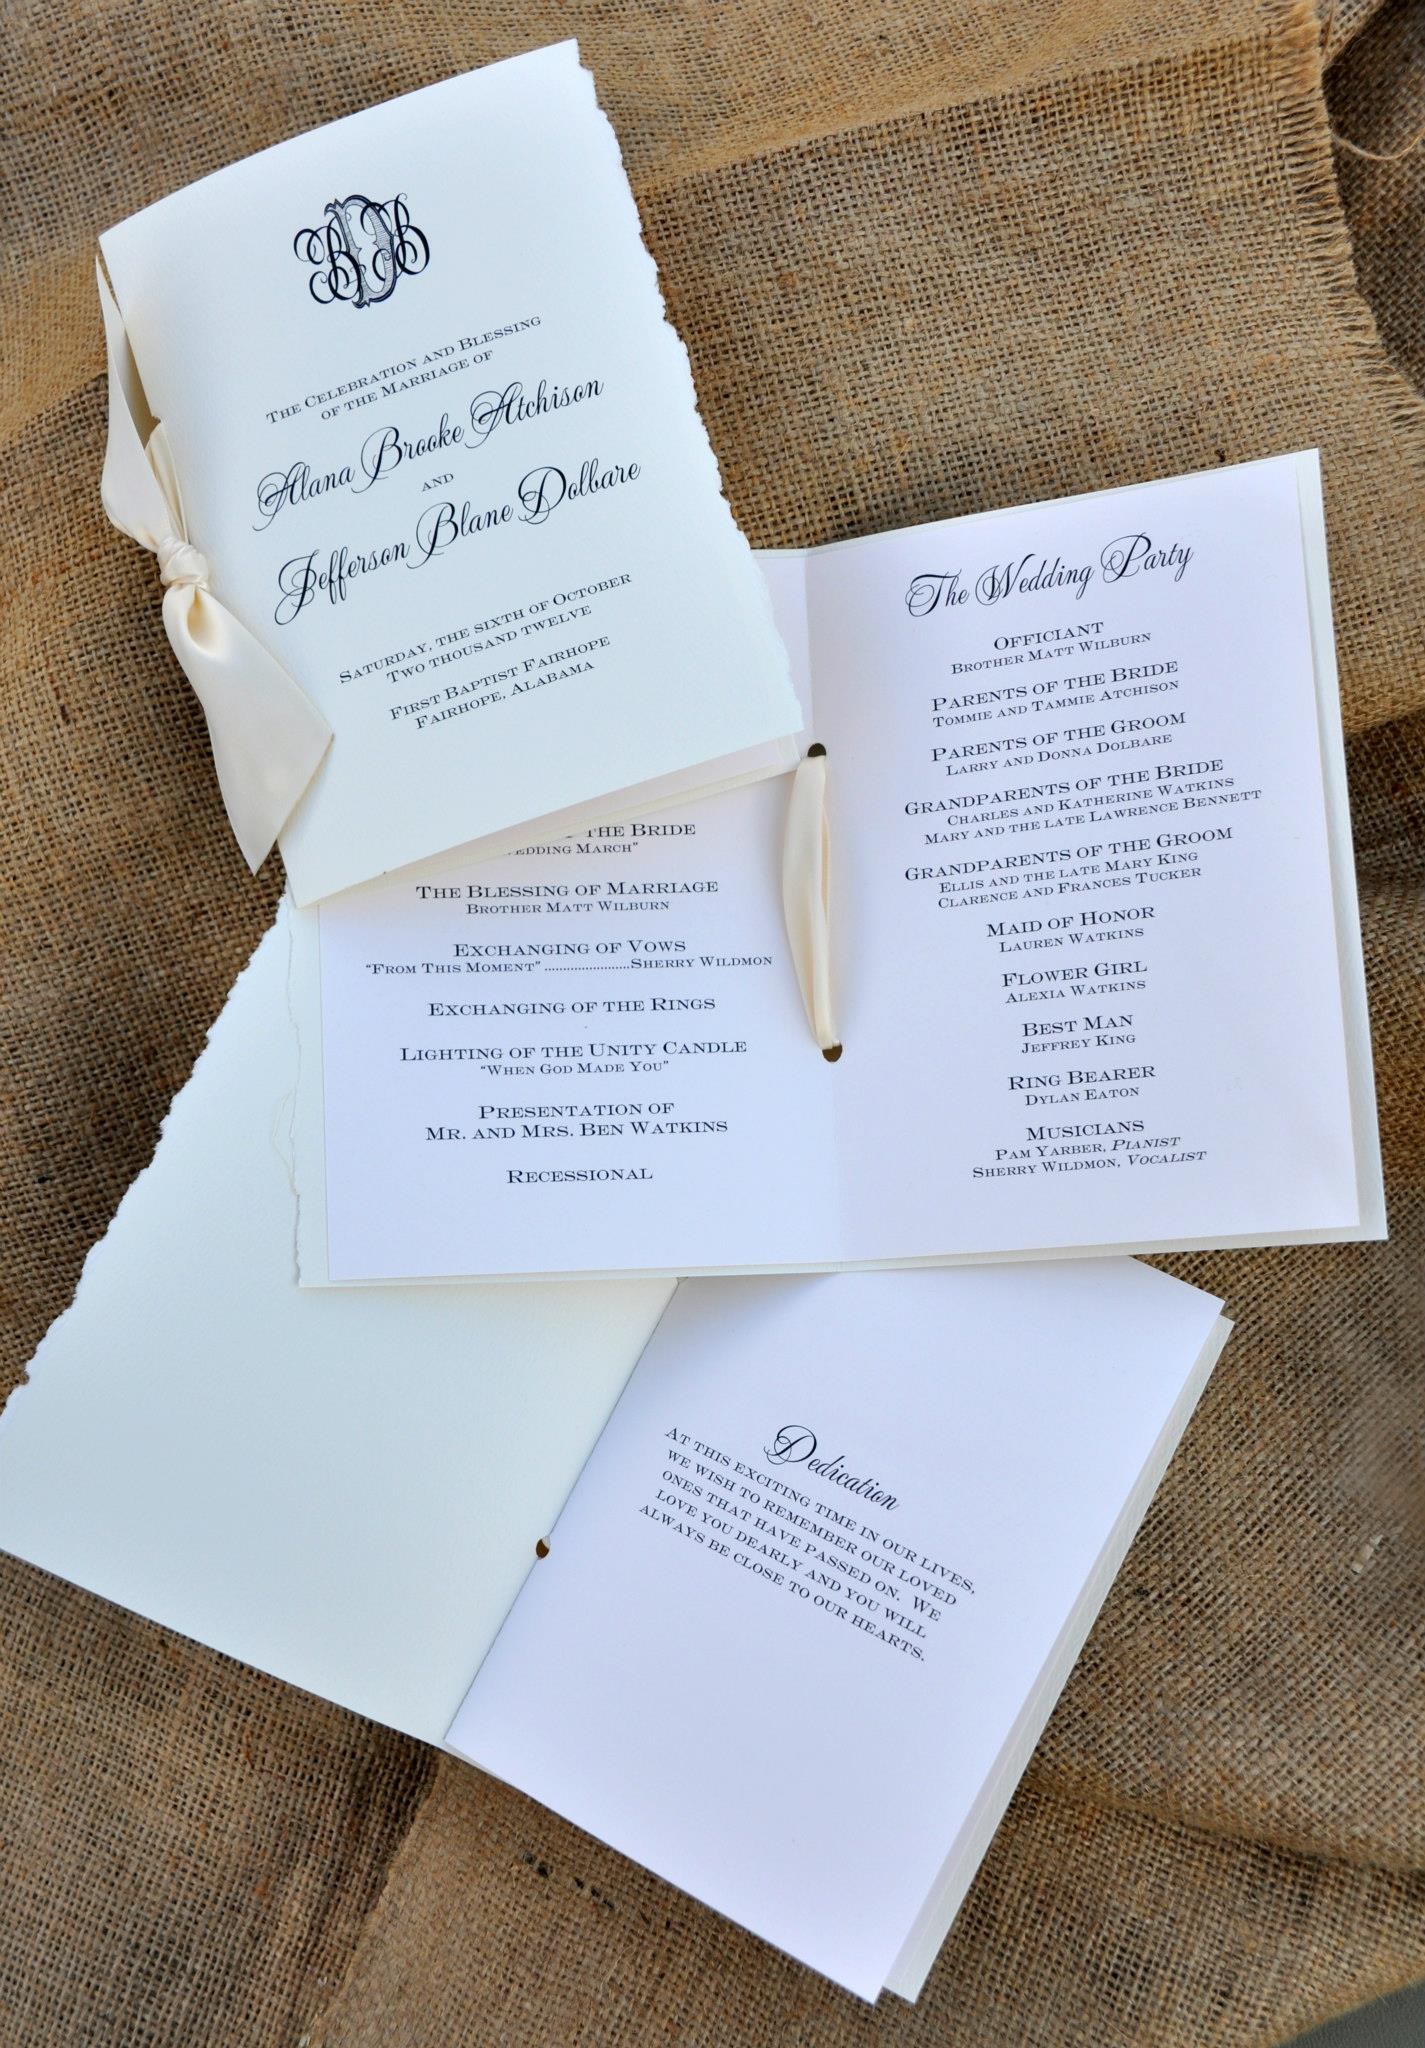 Customizing Your Wedding Programs